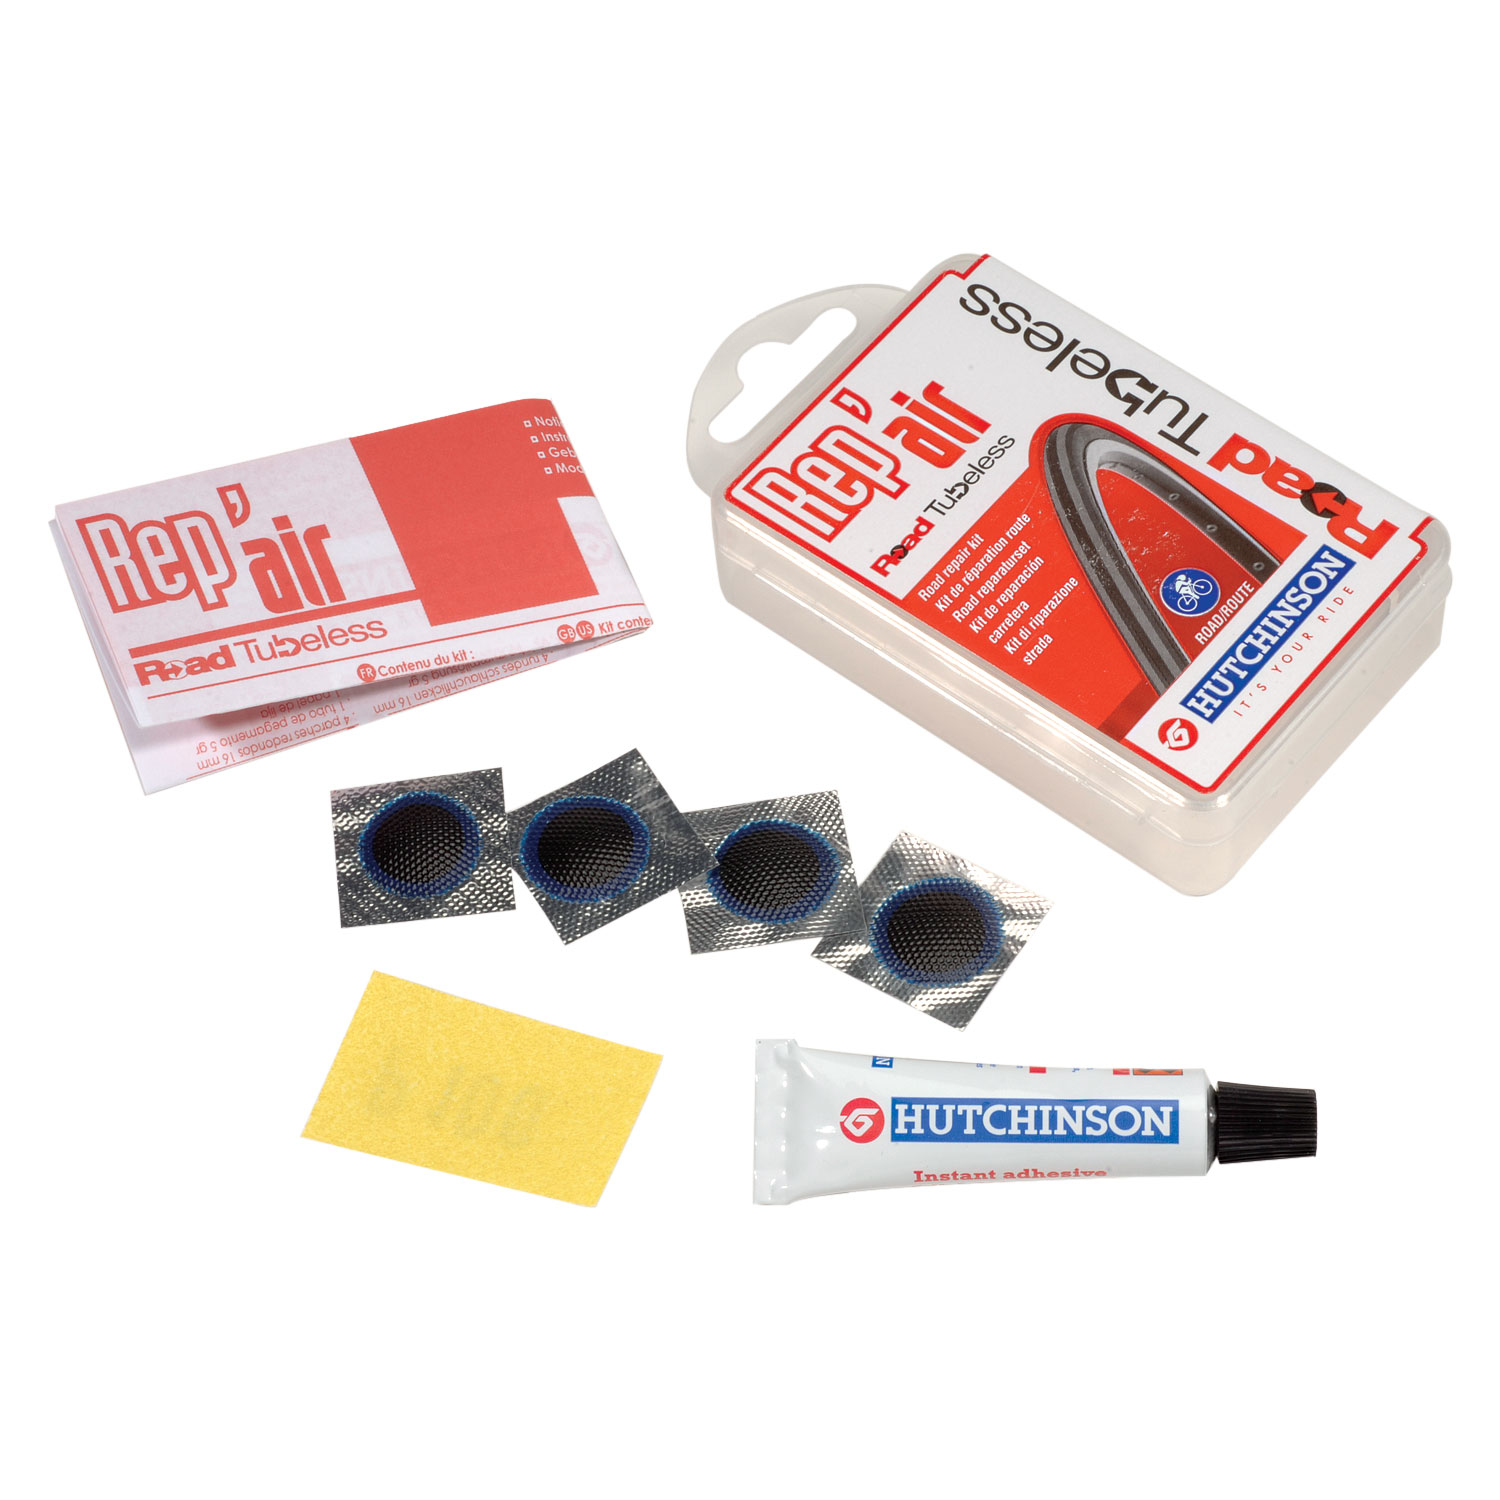 Hutchinson Road Rep/'Air Tubeless Repair Patch Kit for UST Tire